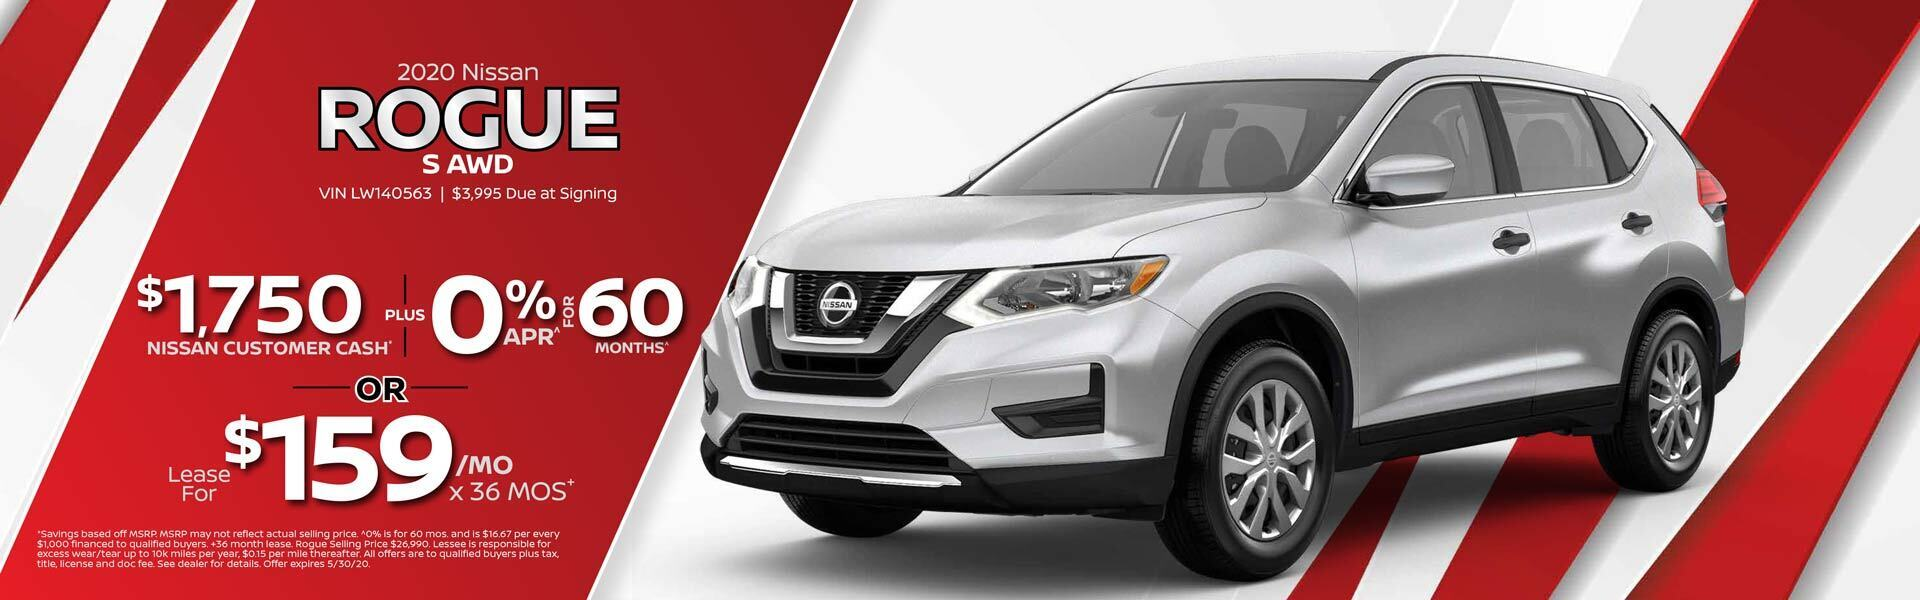 2020 Nissan Rogue $1,750 Nissan Customer Cash PLUS 0% APR